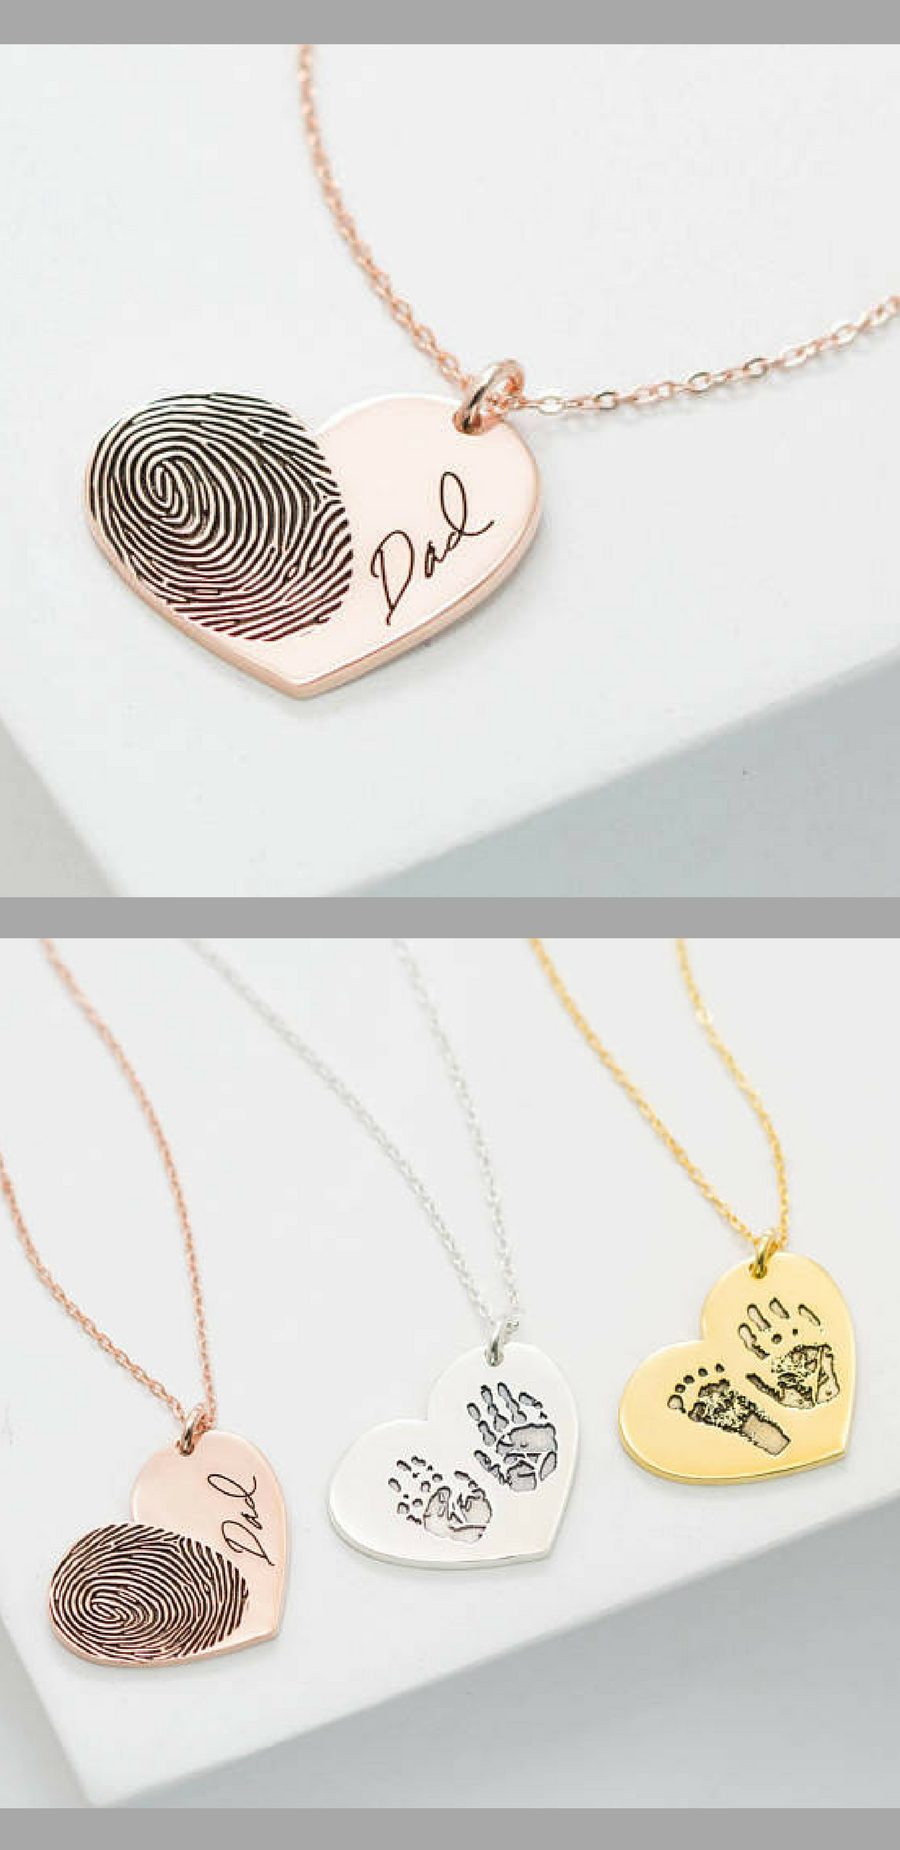 thumbies and array jewelry fingerprint personal memorials keepsakes it make necklace